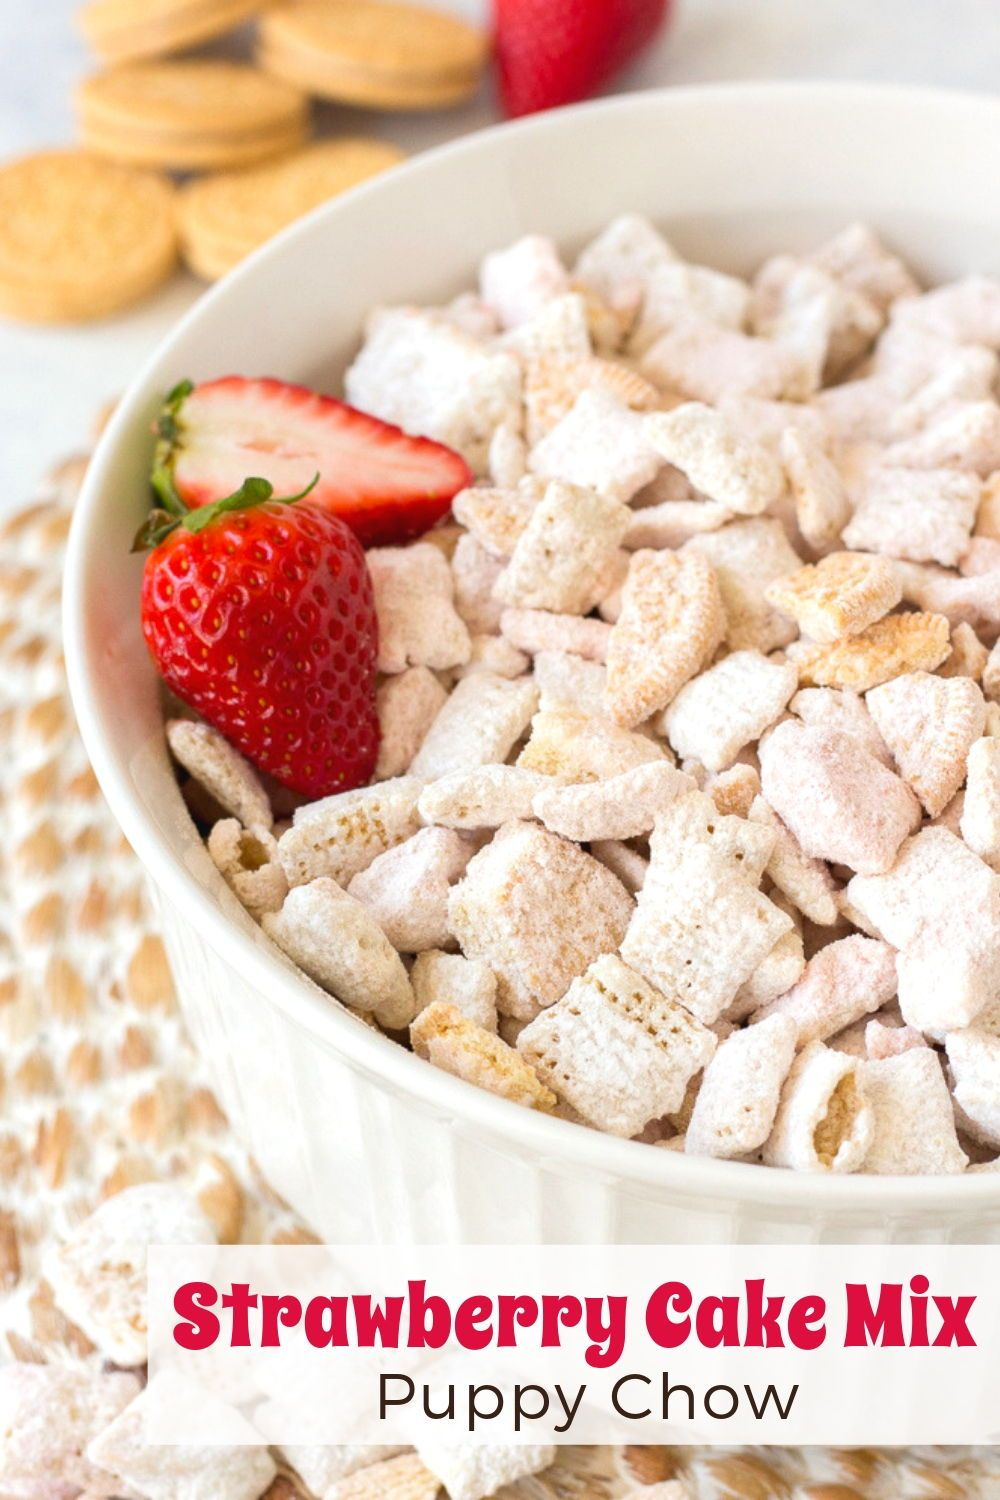 Learn How To Make This Simple And Delicious Chex Mix Recipe The Best Ever Strawberry Oreo Puppy Chex Mix Recipes Puppy Chow Chex Mix Recipe Puppy Chow Recipes